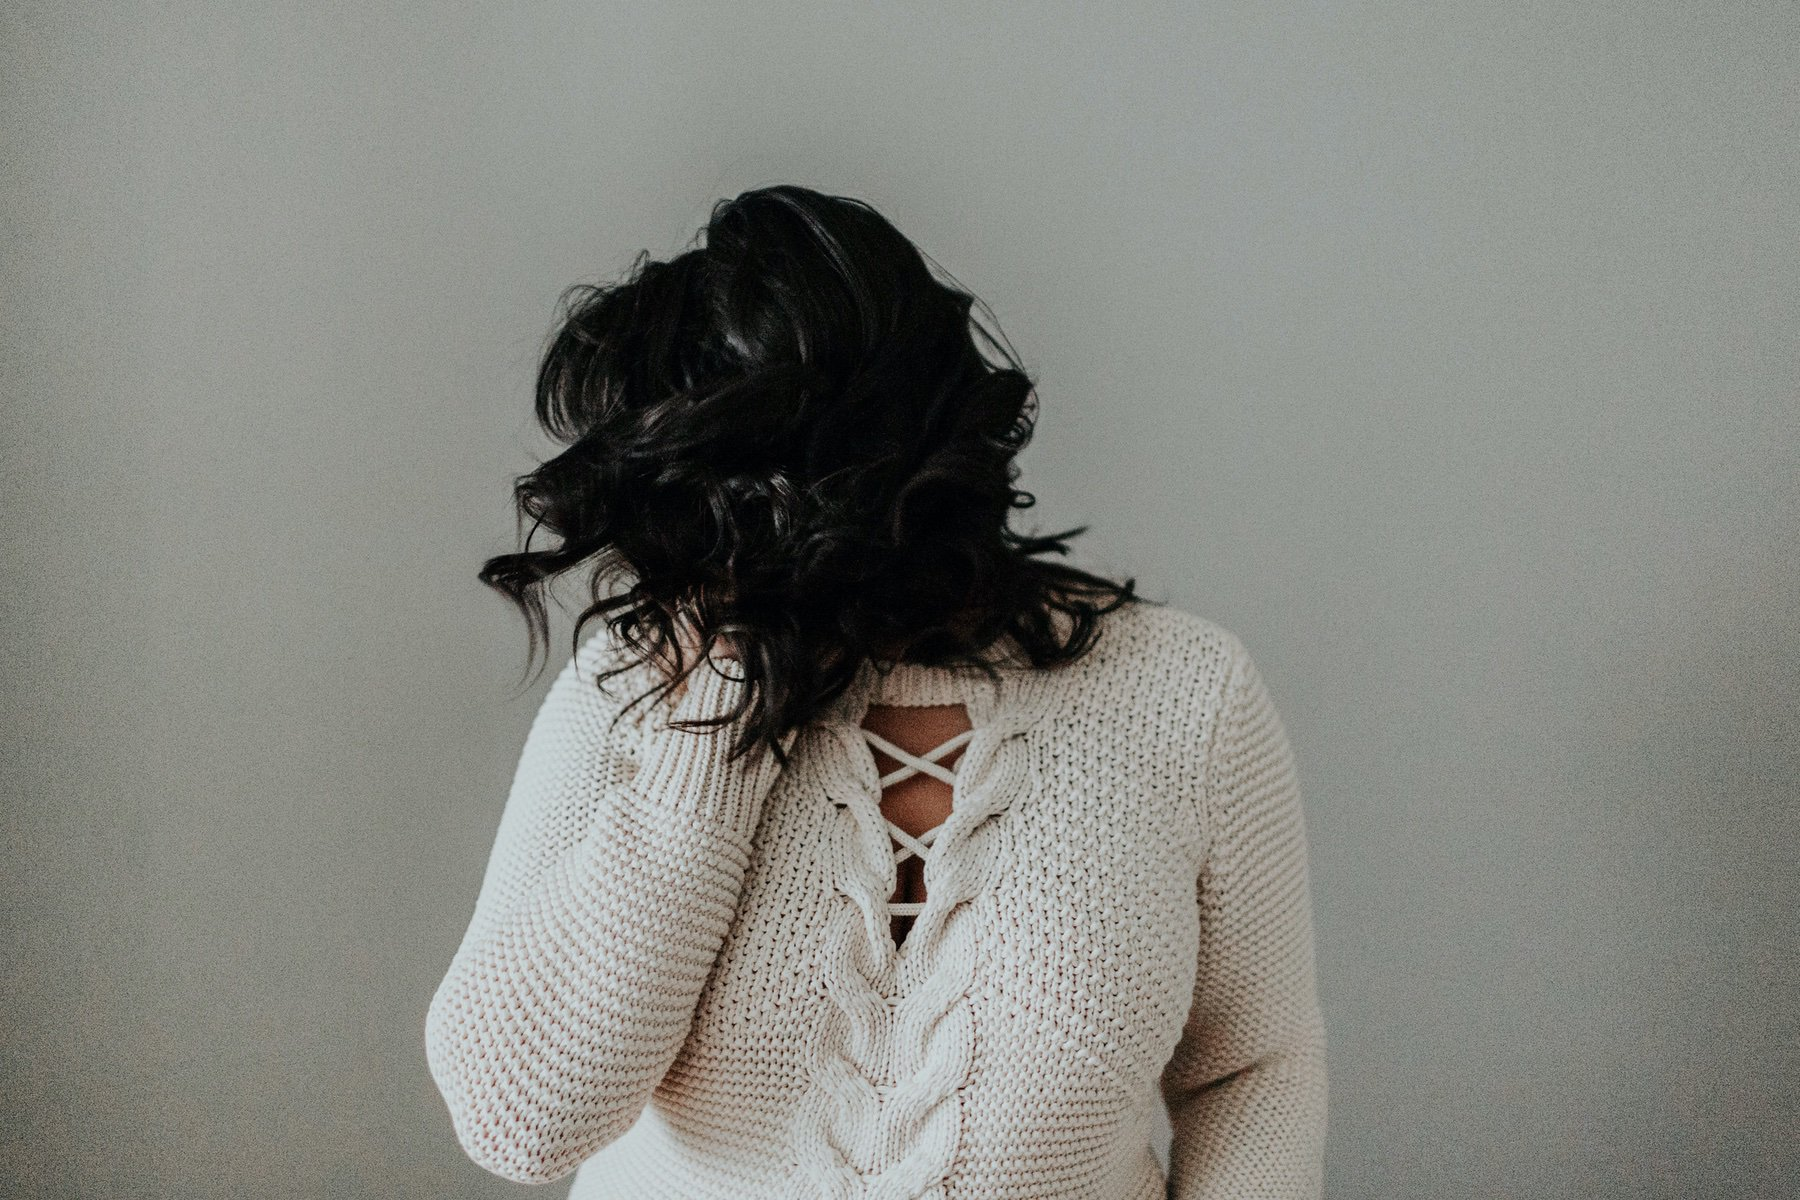 WONDERING WHAT TO SAY TO A FRIEND STRUGGLING WITH DEPRESSION? READ THIS - YELLOW CO.